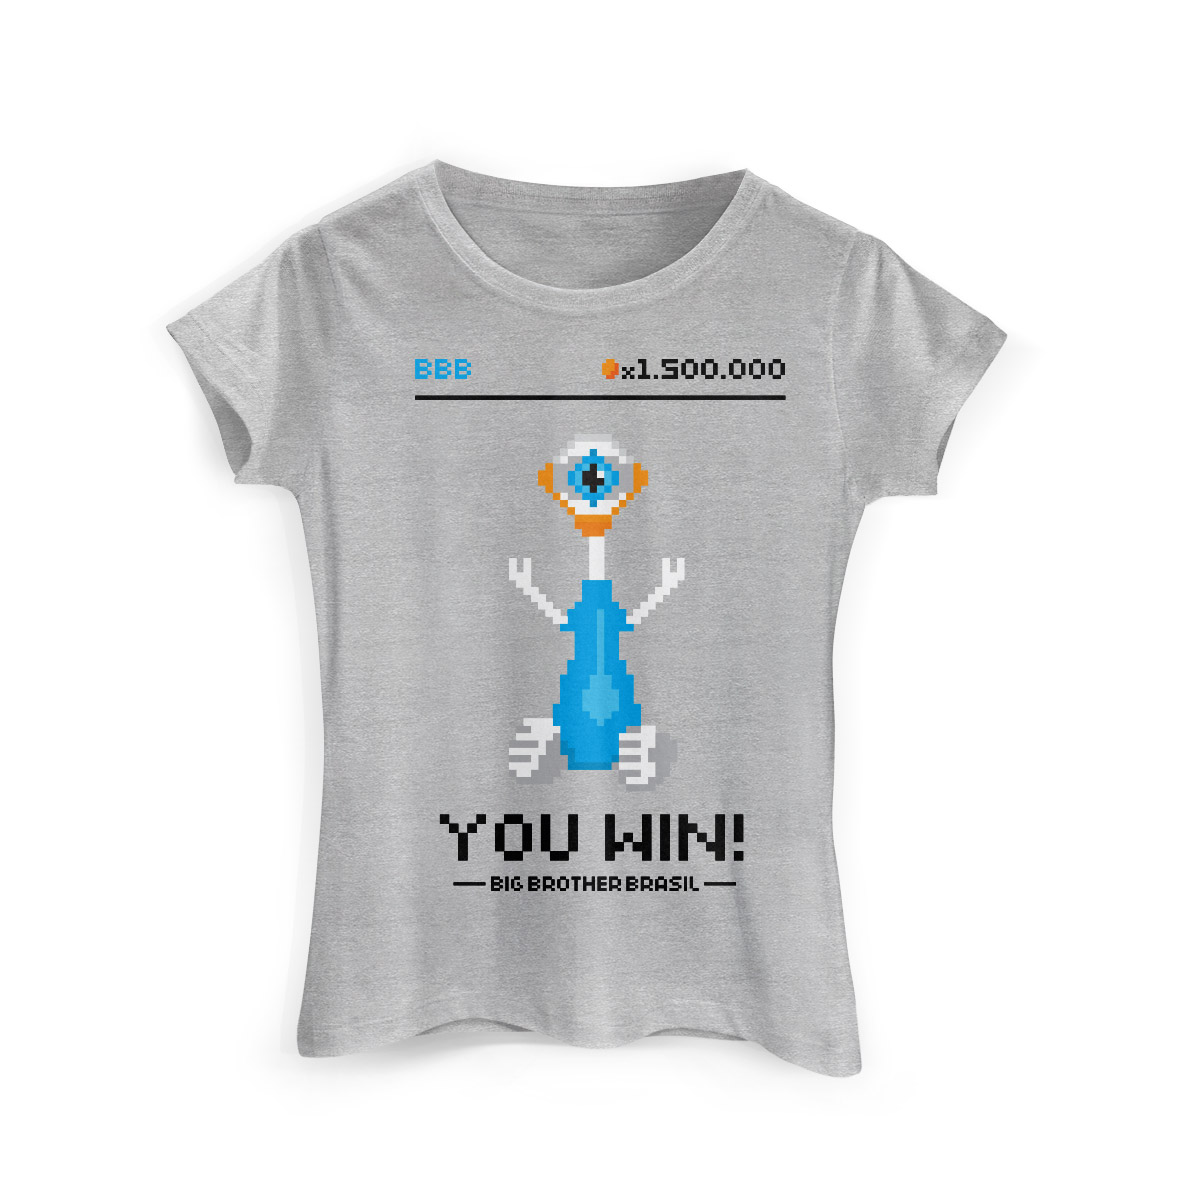 Camiseta Feminina Big Brother Brasil 15 You Win Modelo 2